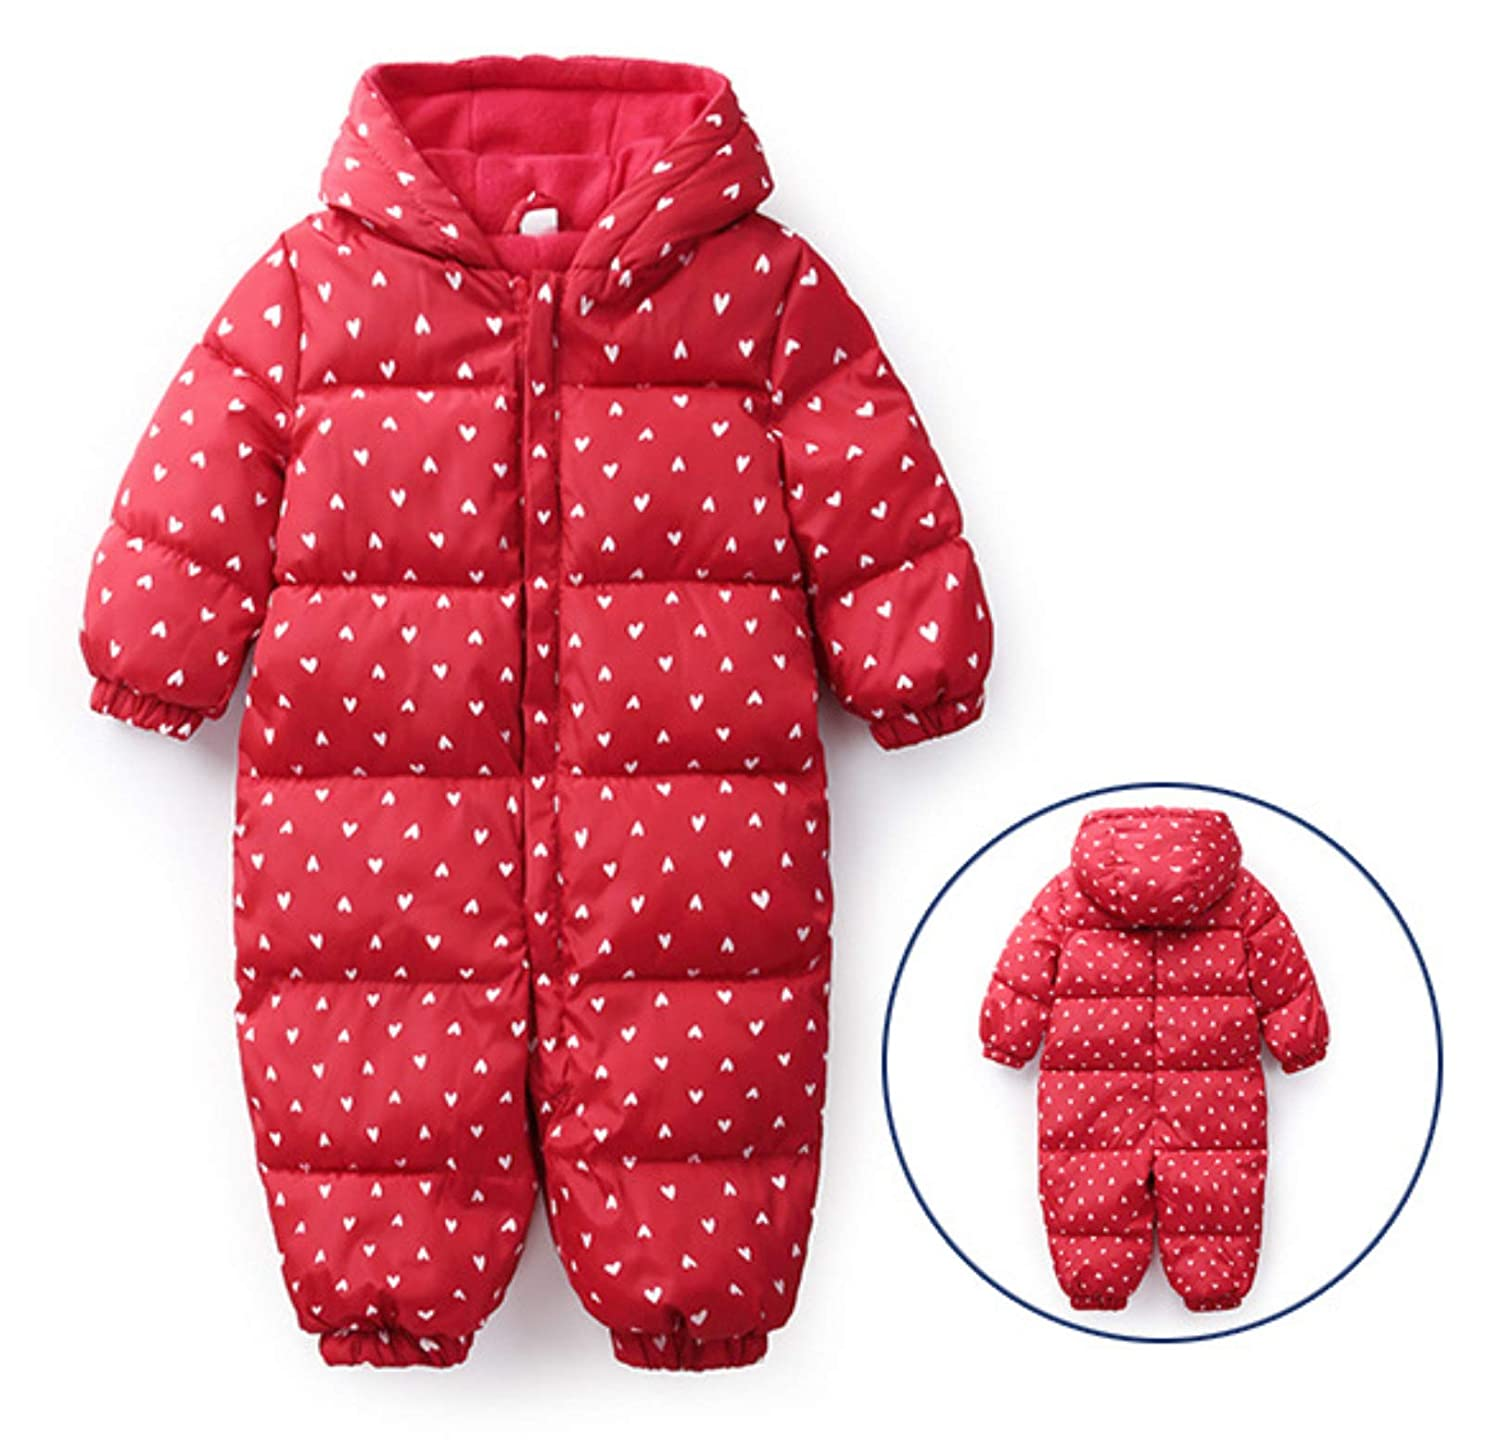 JIAJIAMIN Baby Girls Boys Romper Down Jacket Hooded Jumpsuit Winter Warm Thick Coat Onesie Snowsuit Clothes